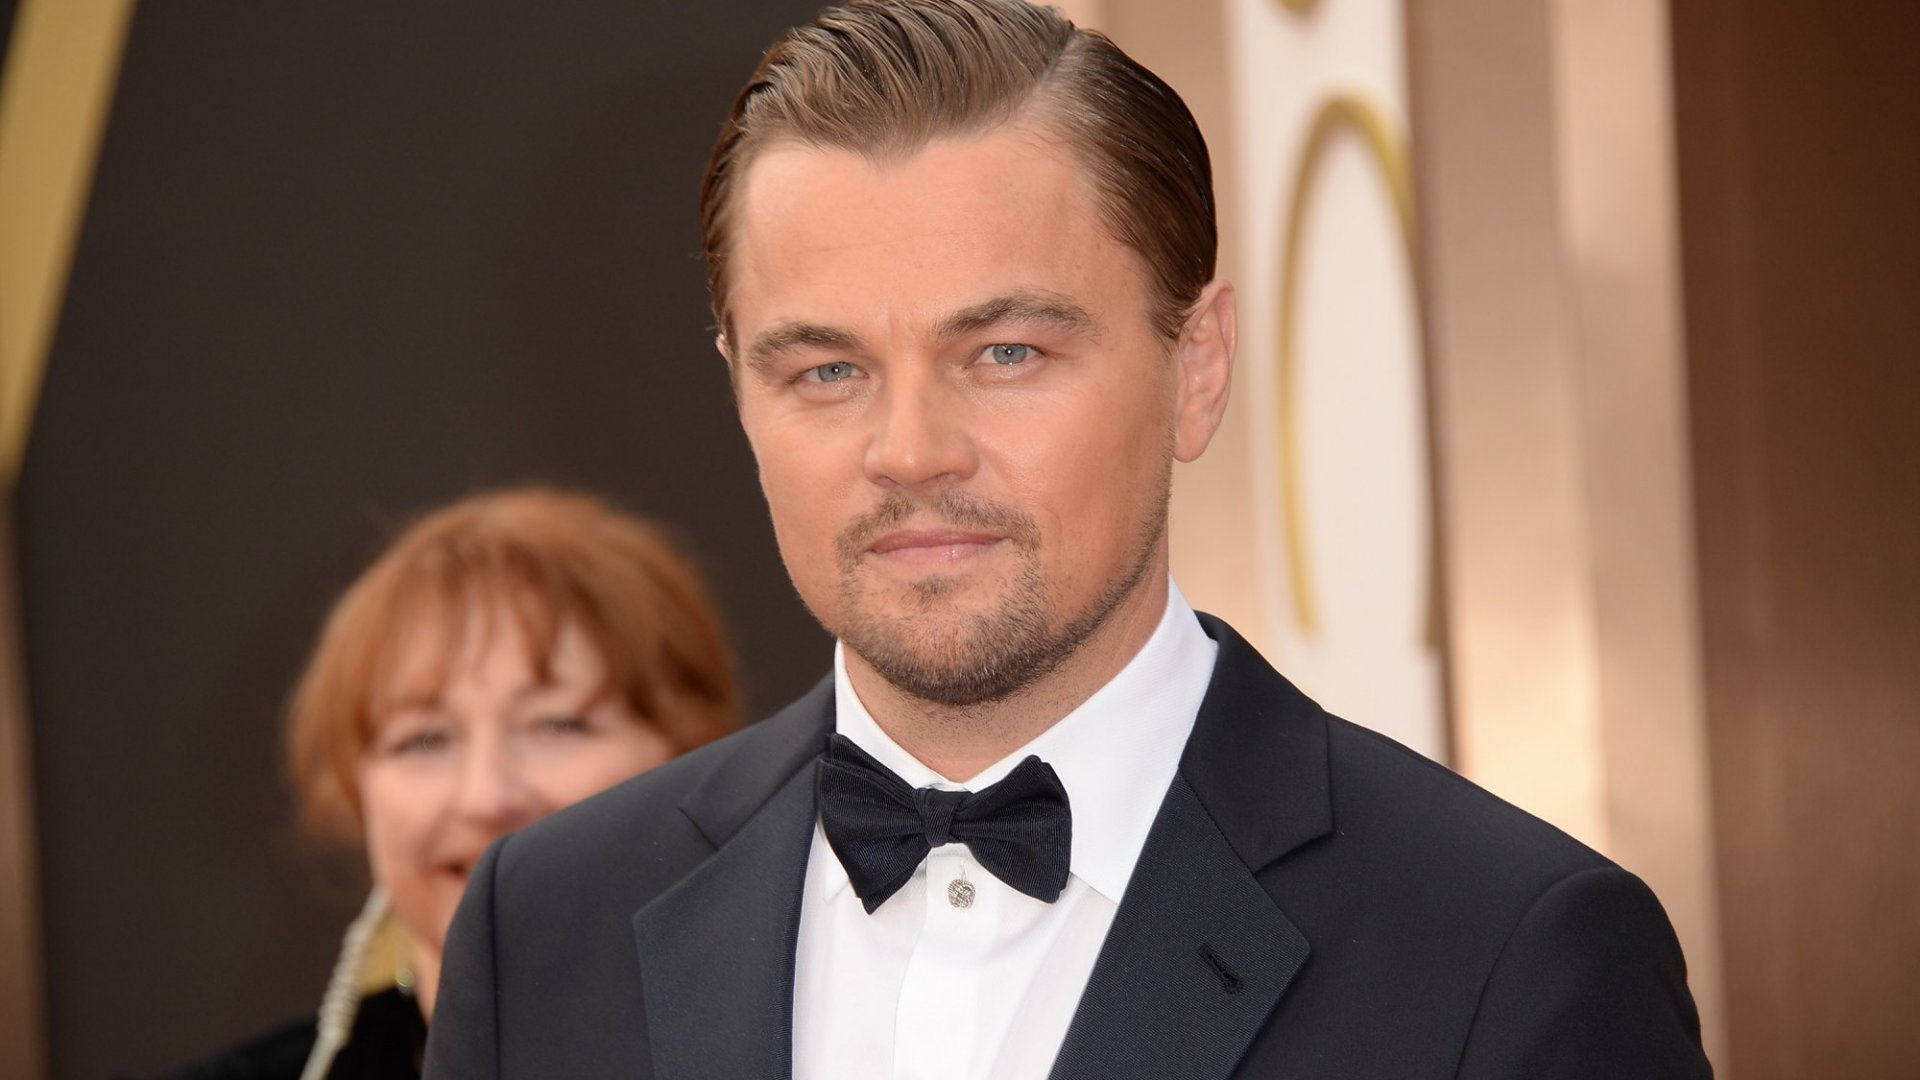 This Startup Funded by Leonardo DiCaprio Just Raised $55 Million